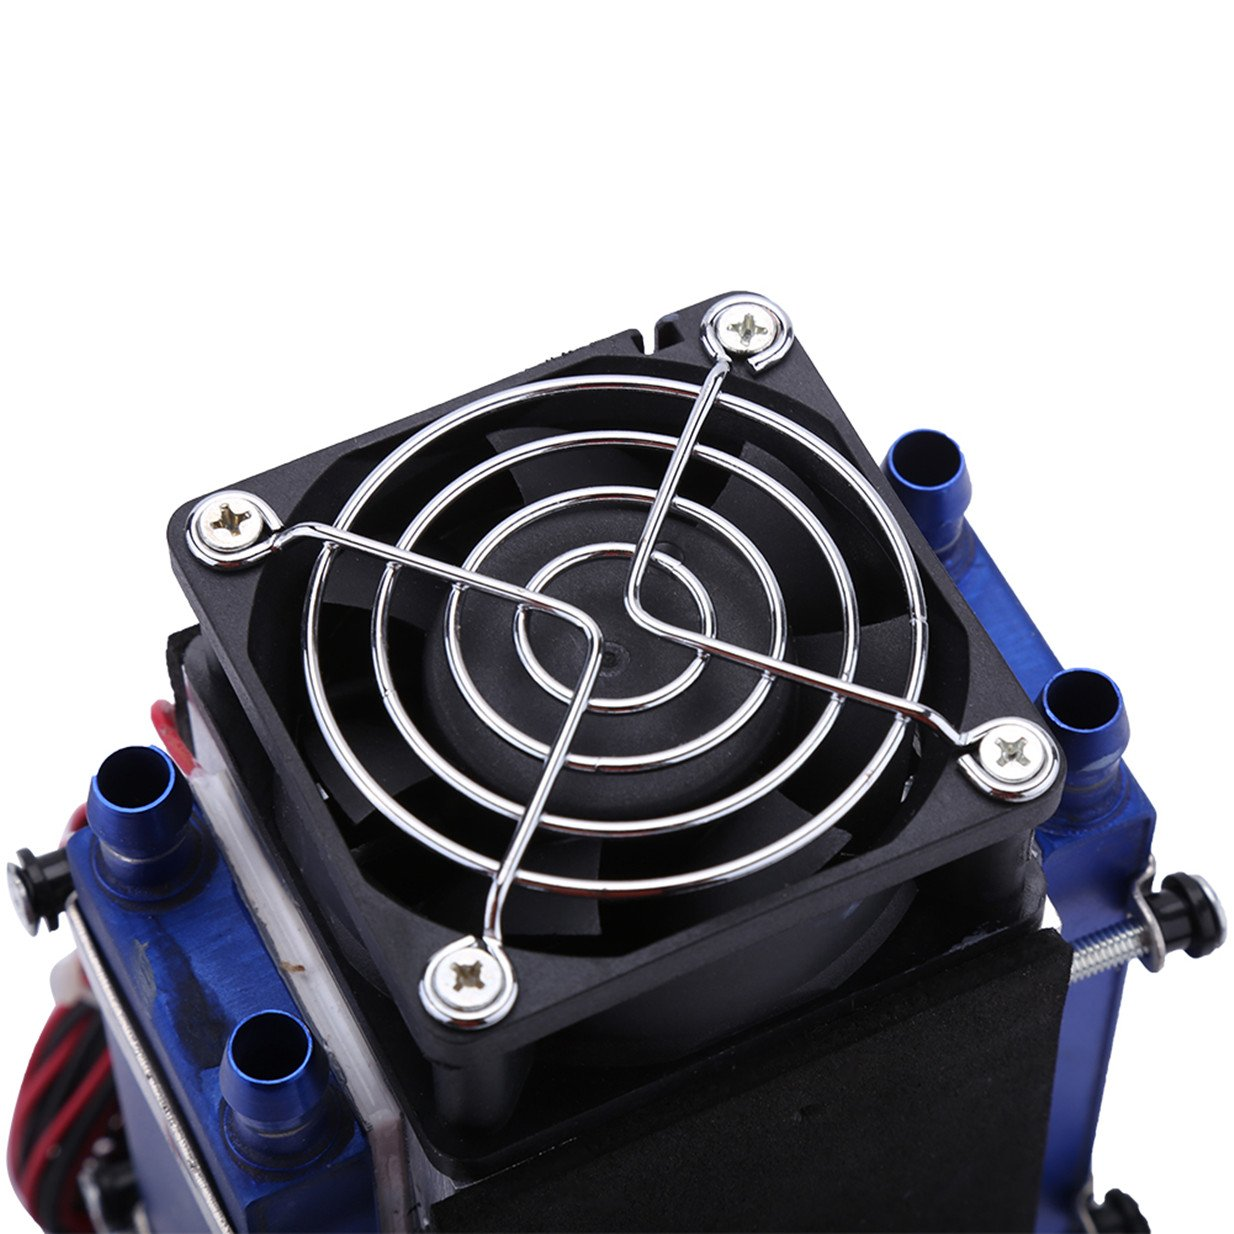 Mini Air Conditioner,DC 12V 576W 8-Chip TEC1-12706 DIY Thermoelectric Cooler Air Cooling Device by Walfront (Image #4)